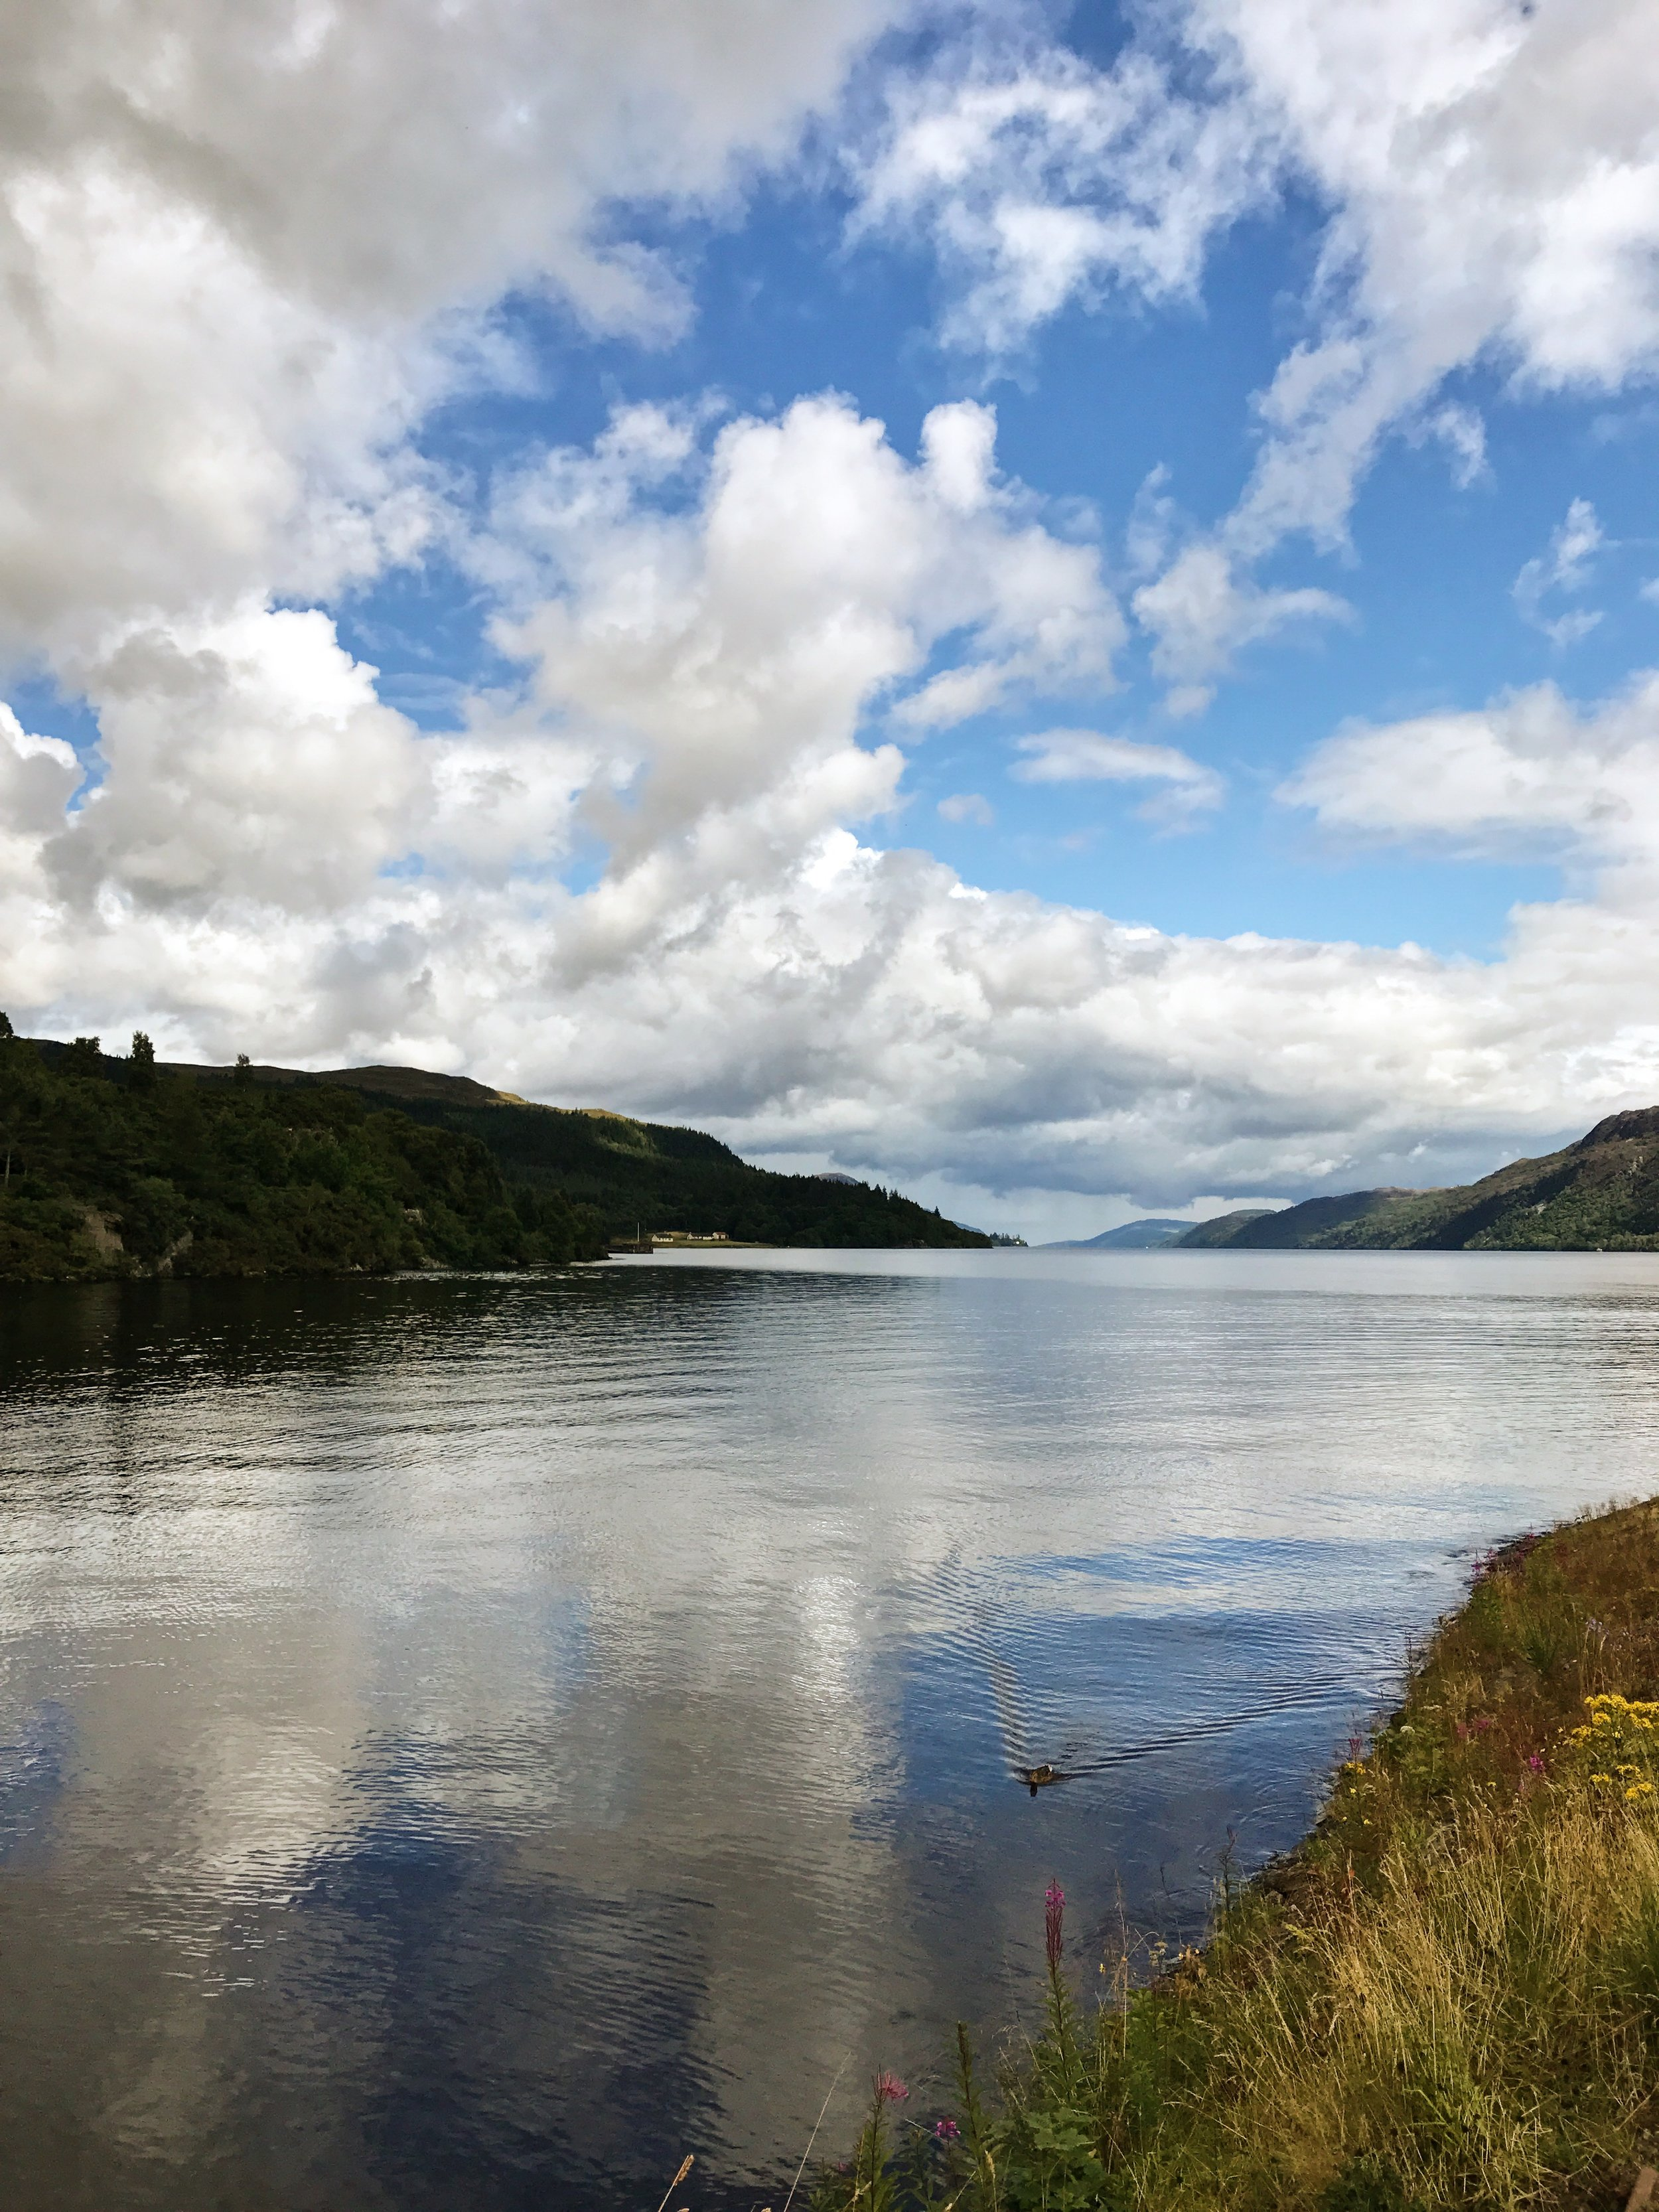 Loch Ness. Do you see The Monster?!